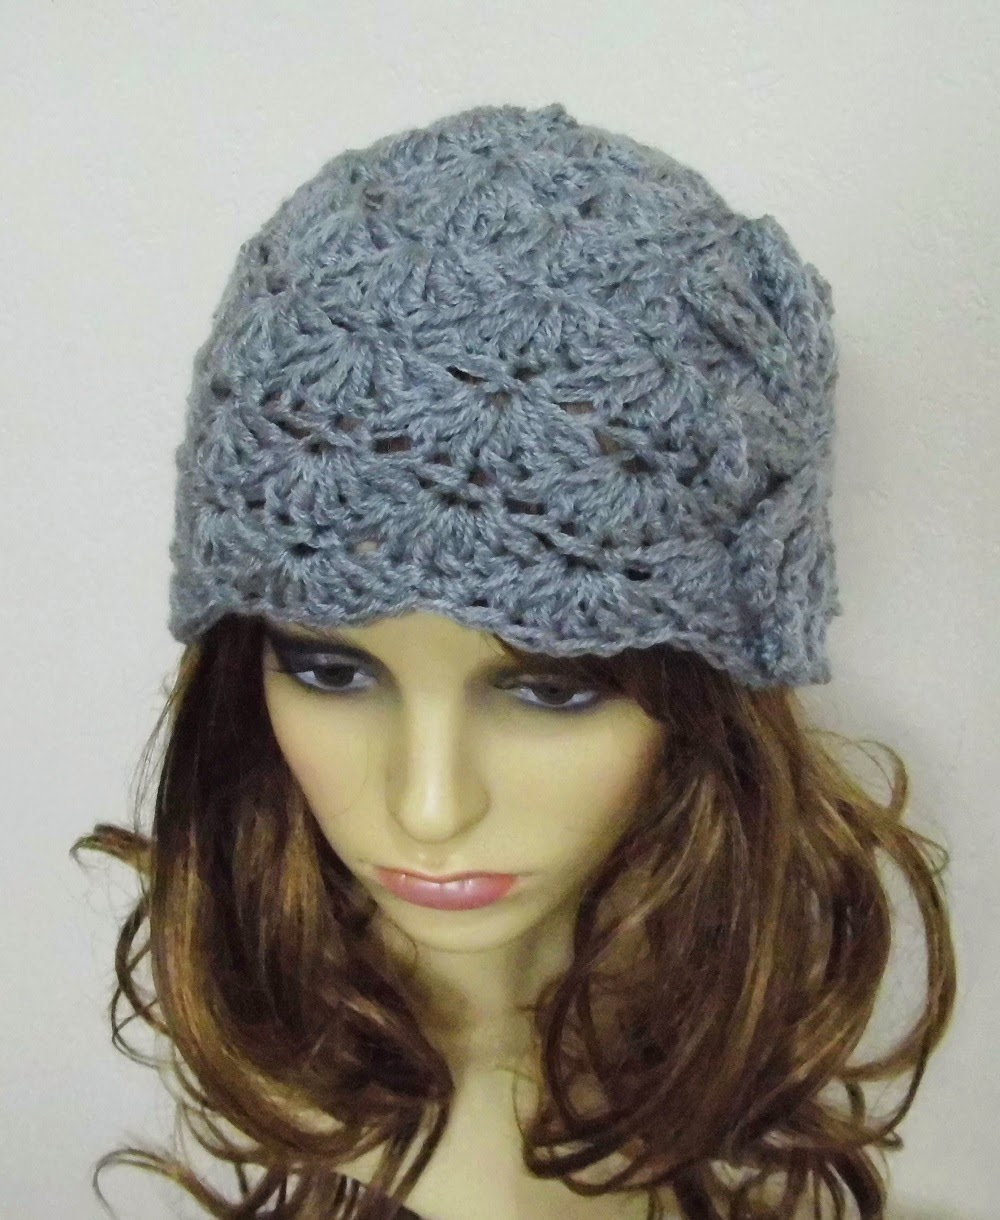 ... +hat,+white+hat,+crochet+hats,+hats,+crochet+hat,+adult+hat,+..JPG